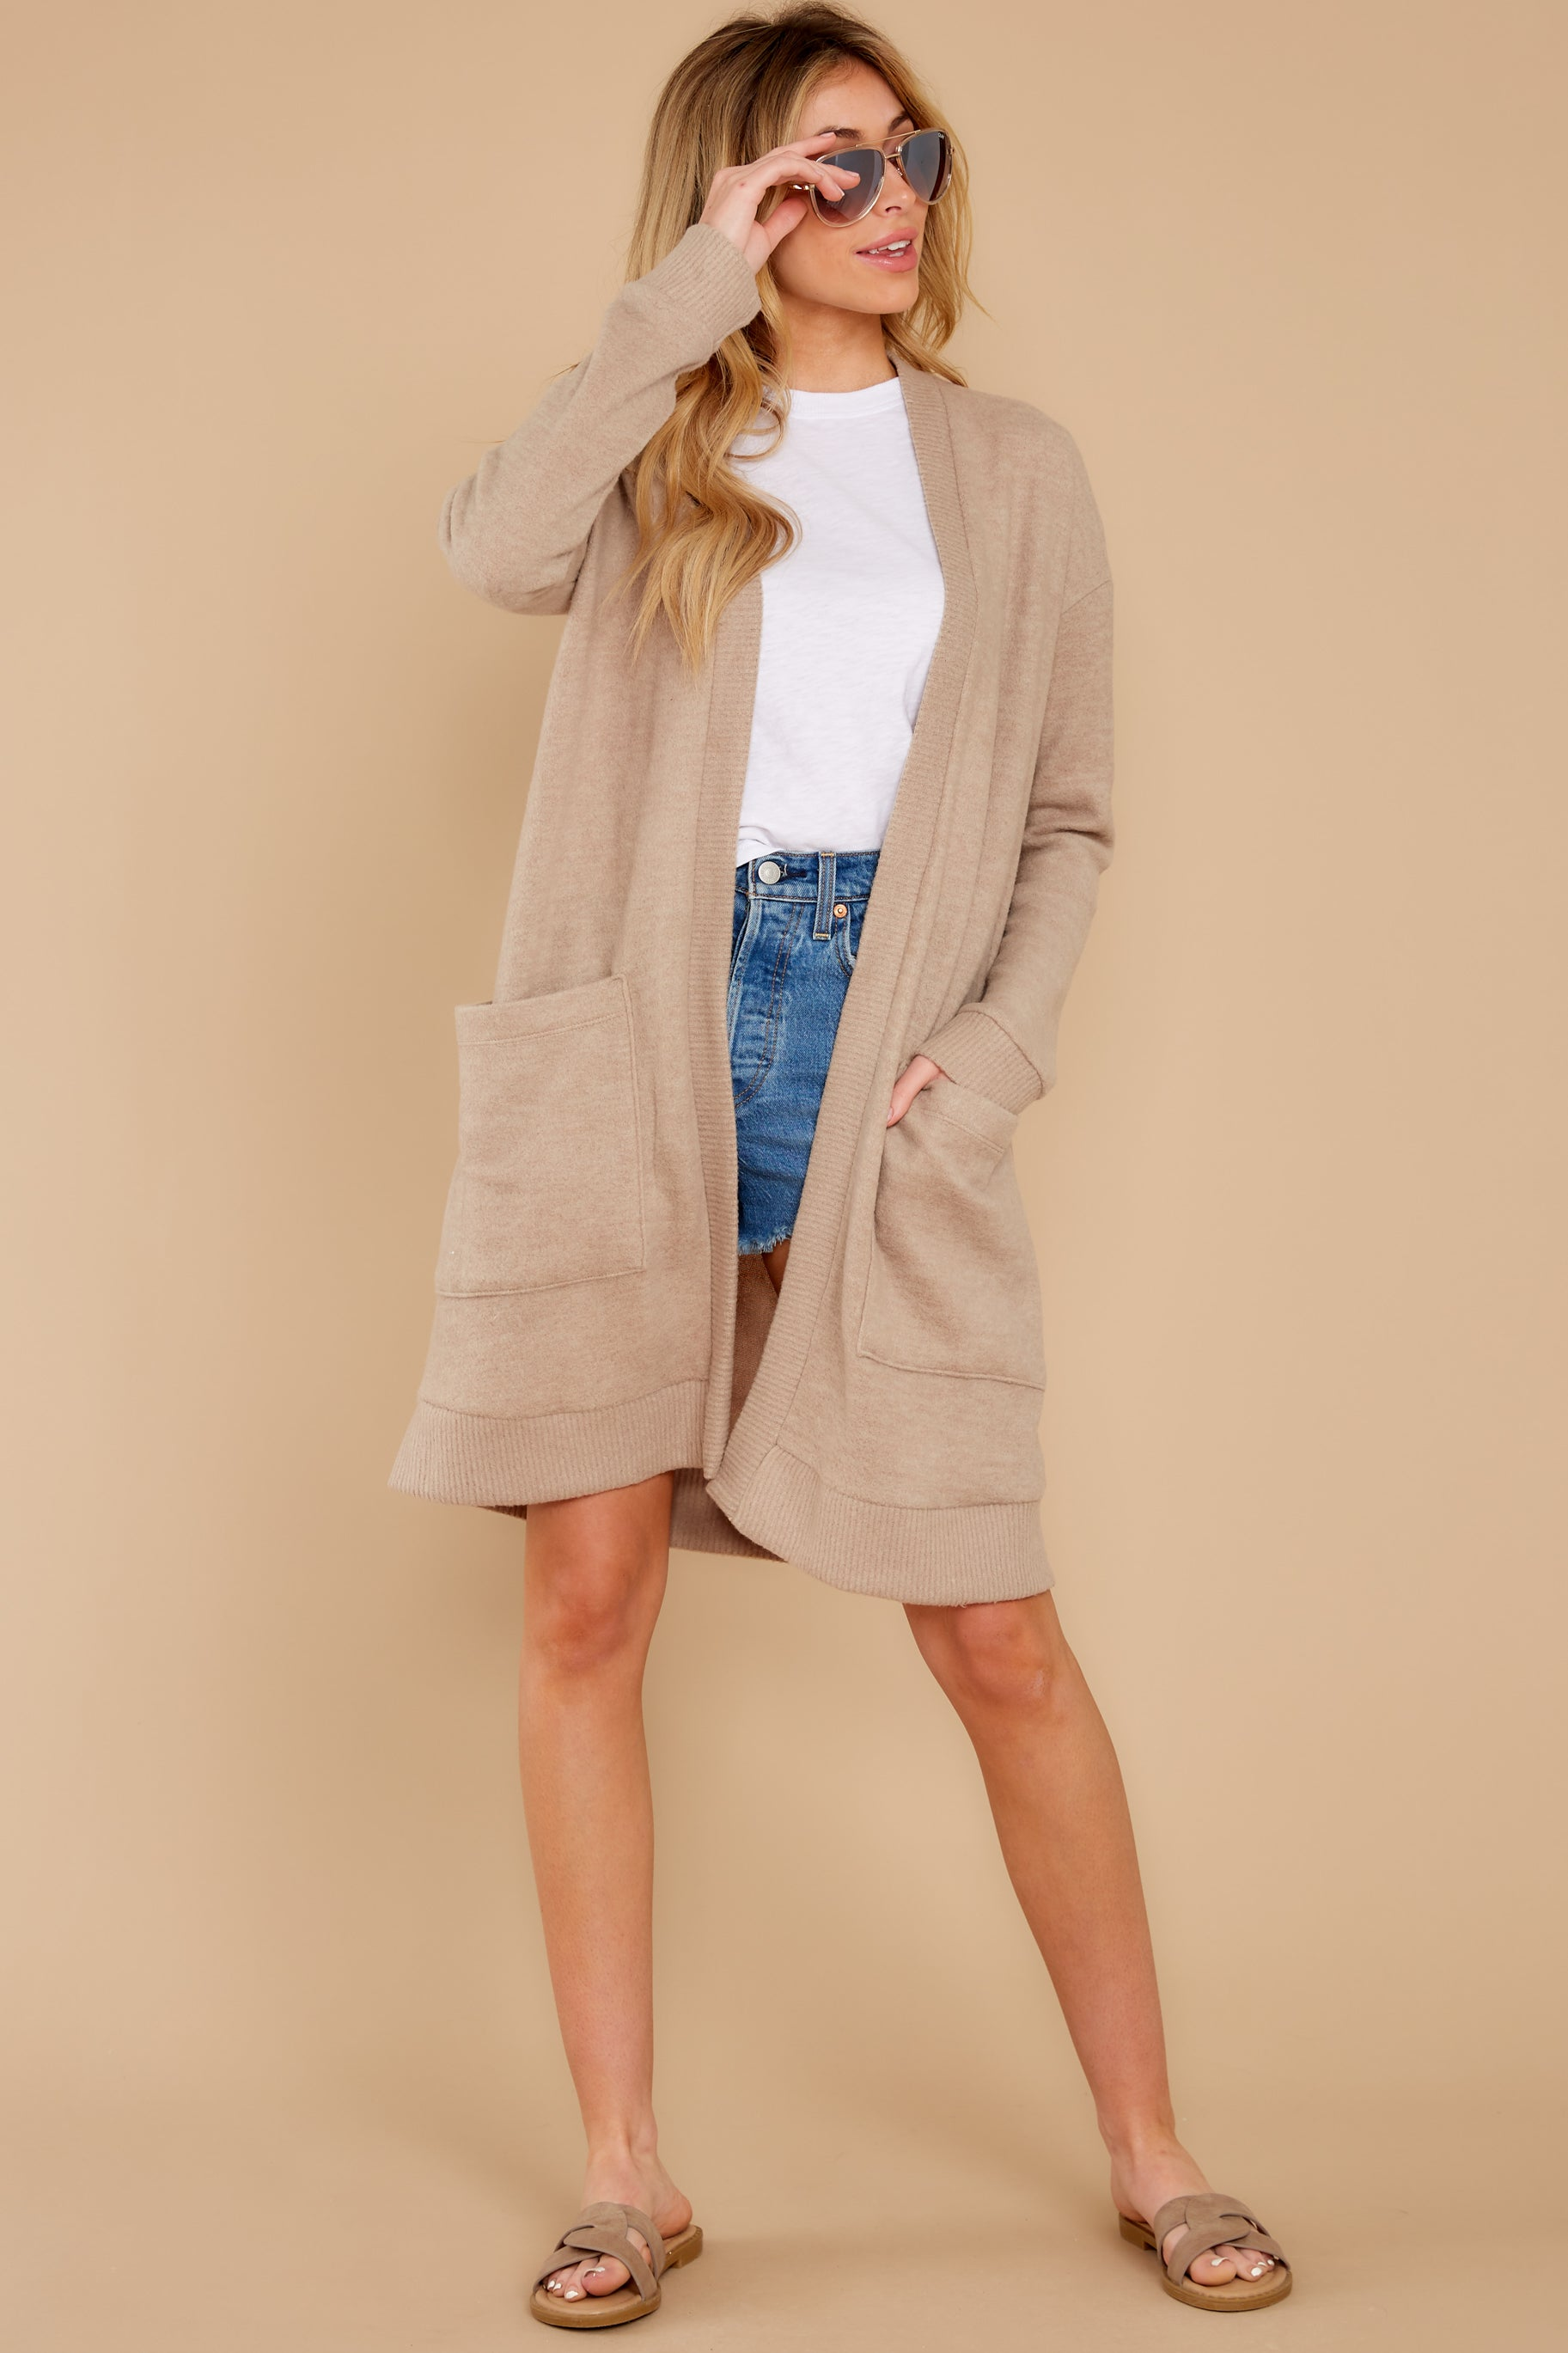 4 All I Really Want Taupe Cardigan at reddress.com